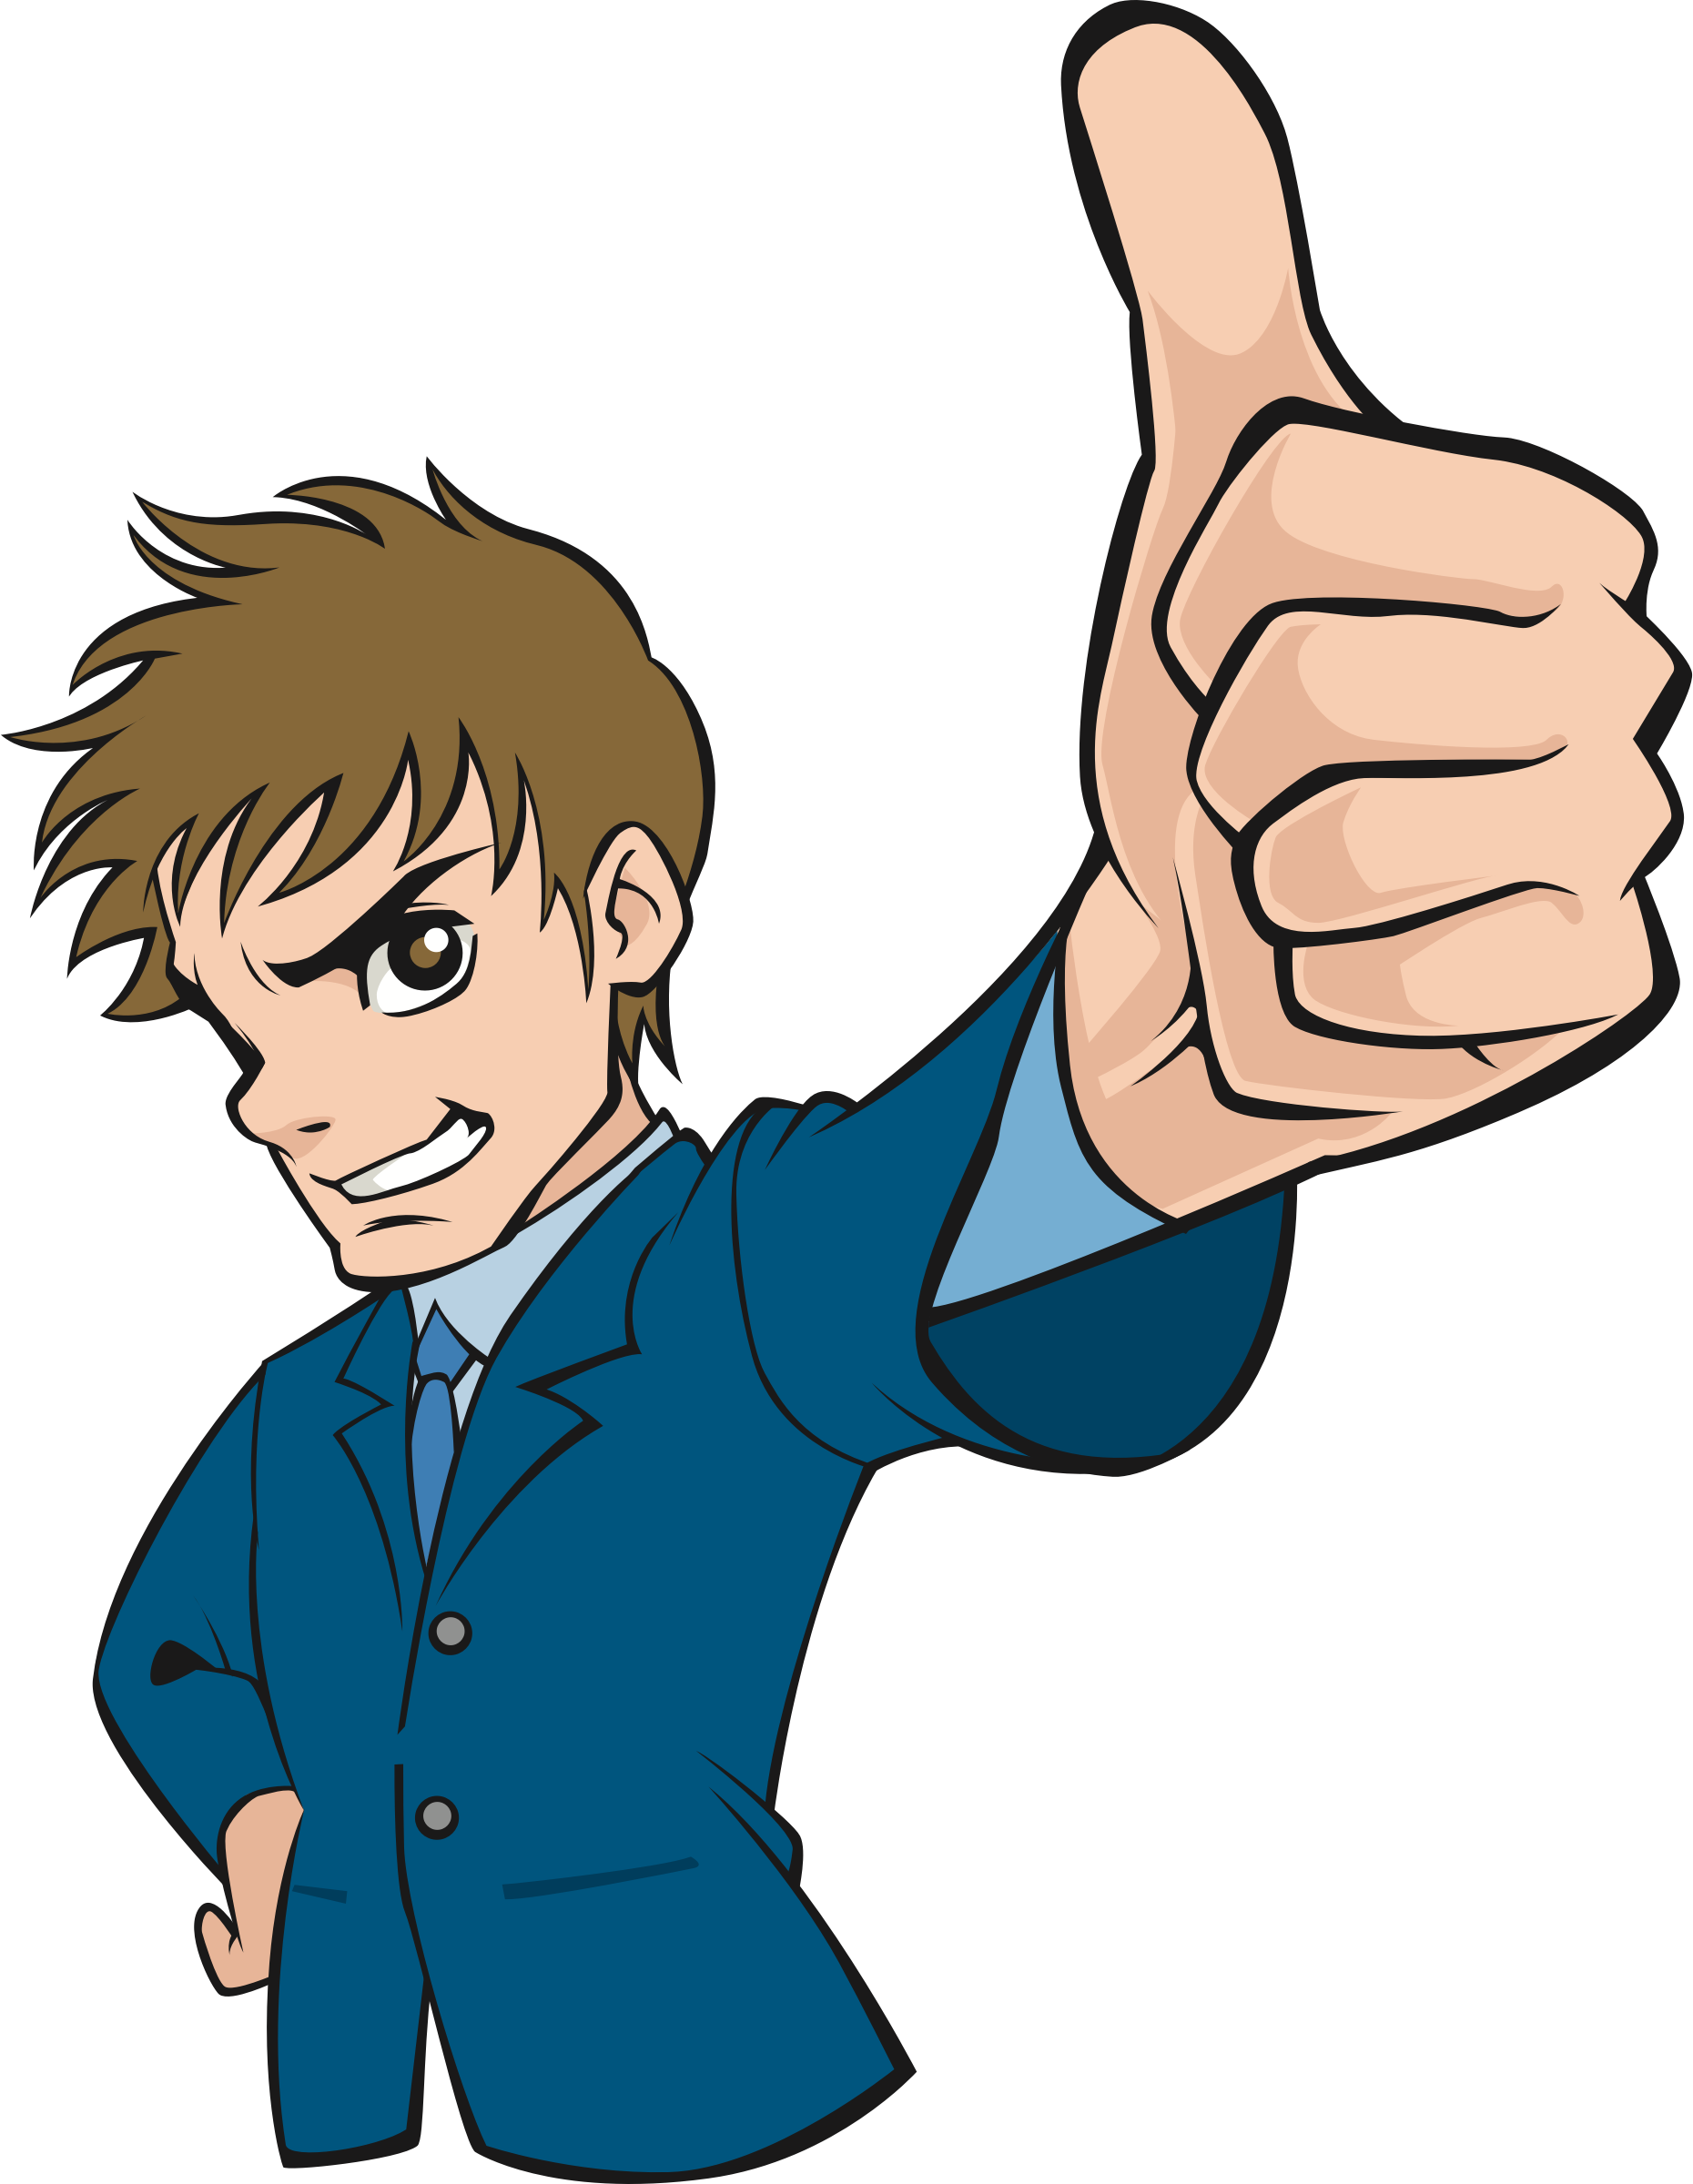 Boy with thumbs up clipart jpg royalty free Clipart - Thumbs up (#1) jpg royalty free